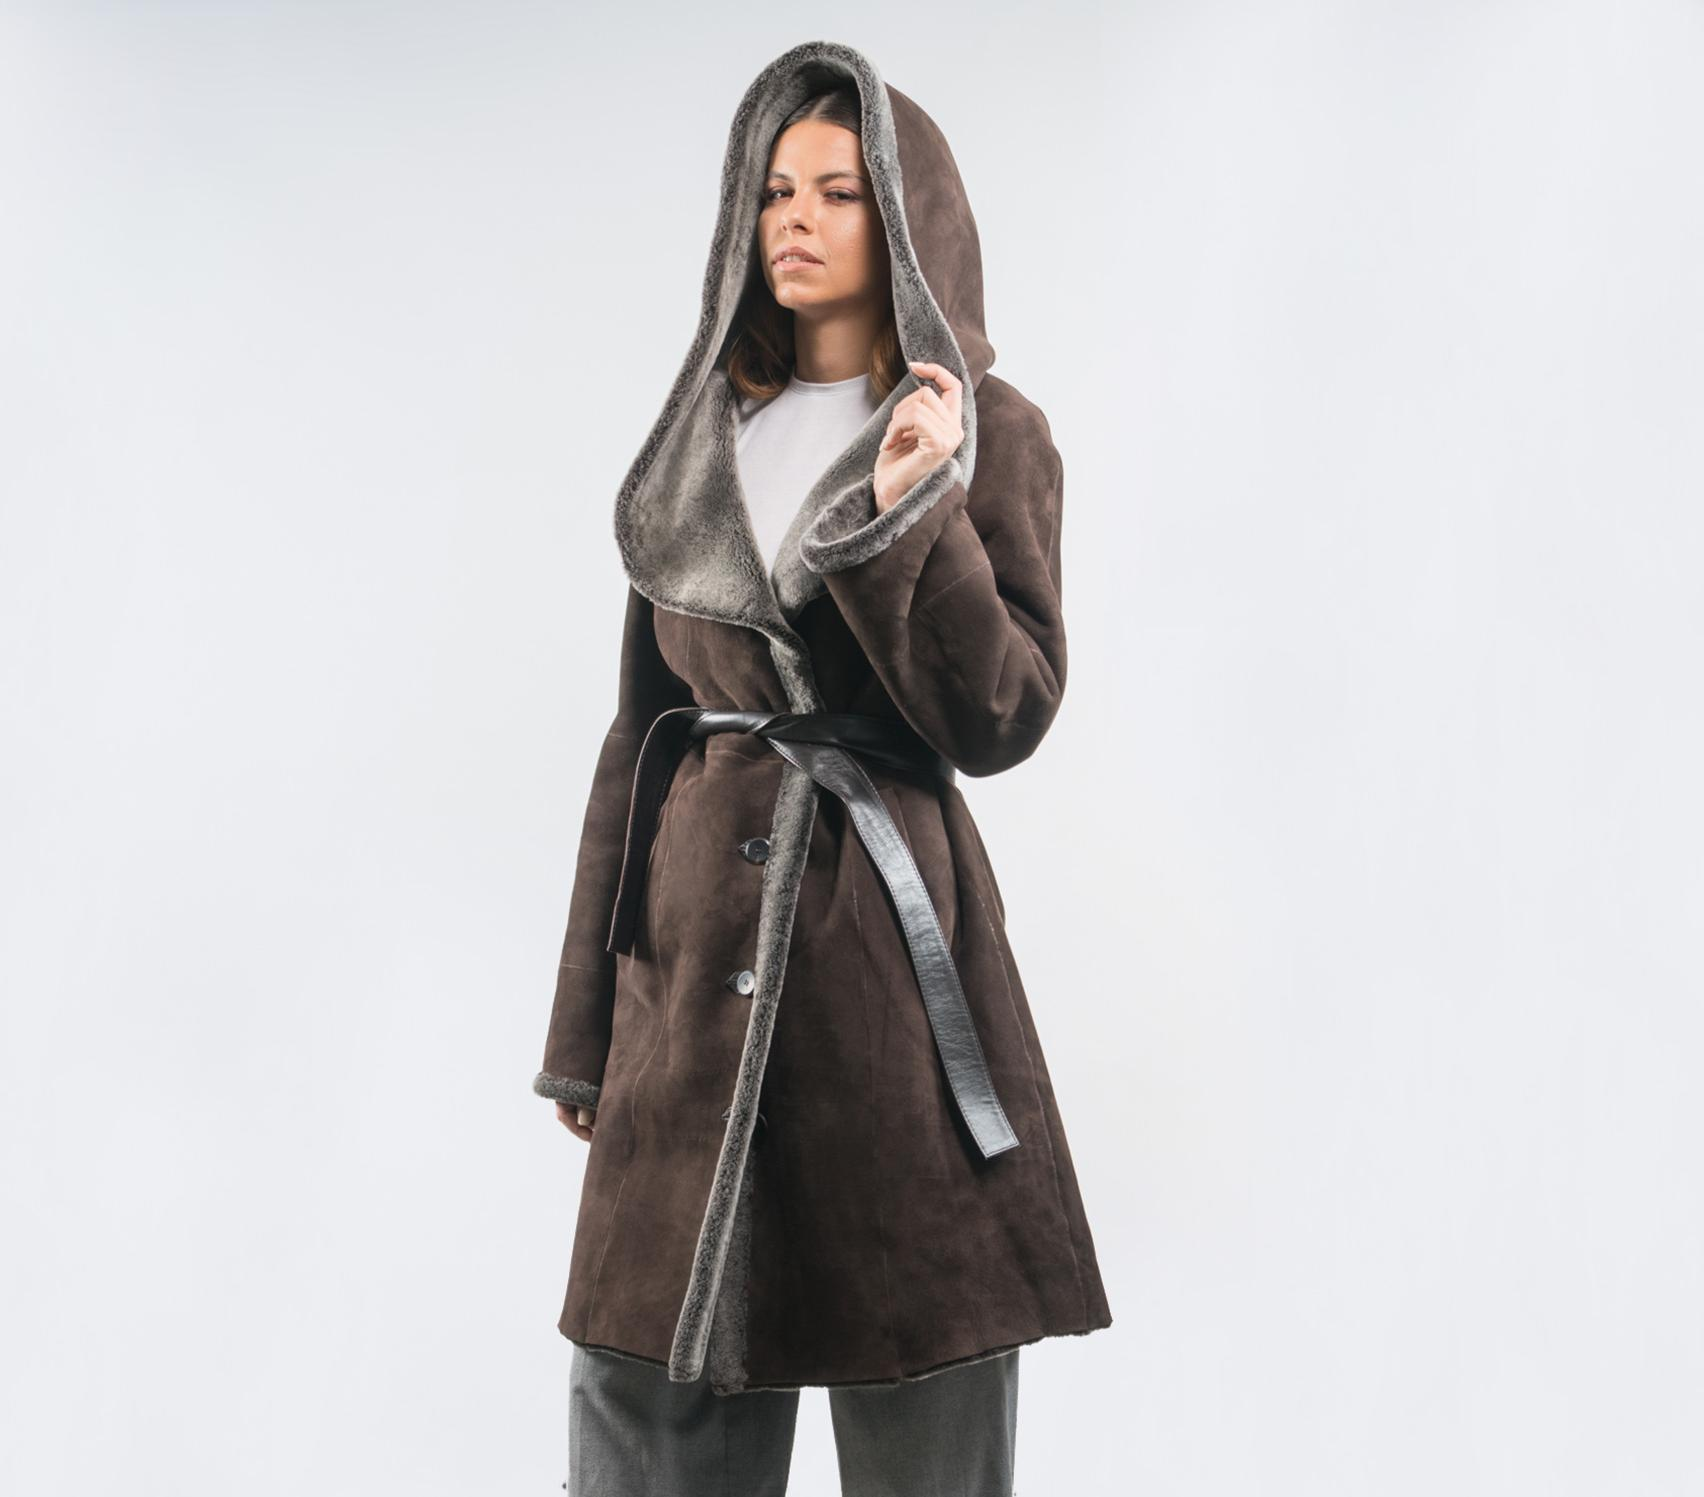 fda8d18138b Choco Brown Sheepskin Jacket With Hood - 100% Real Fur - Haute Acorn